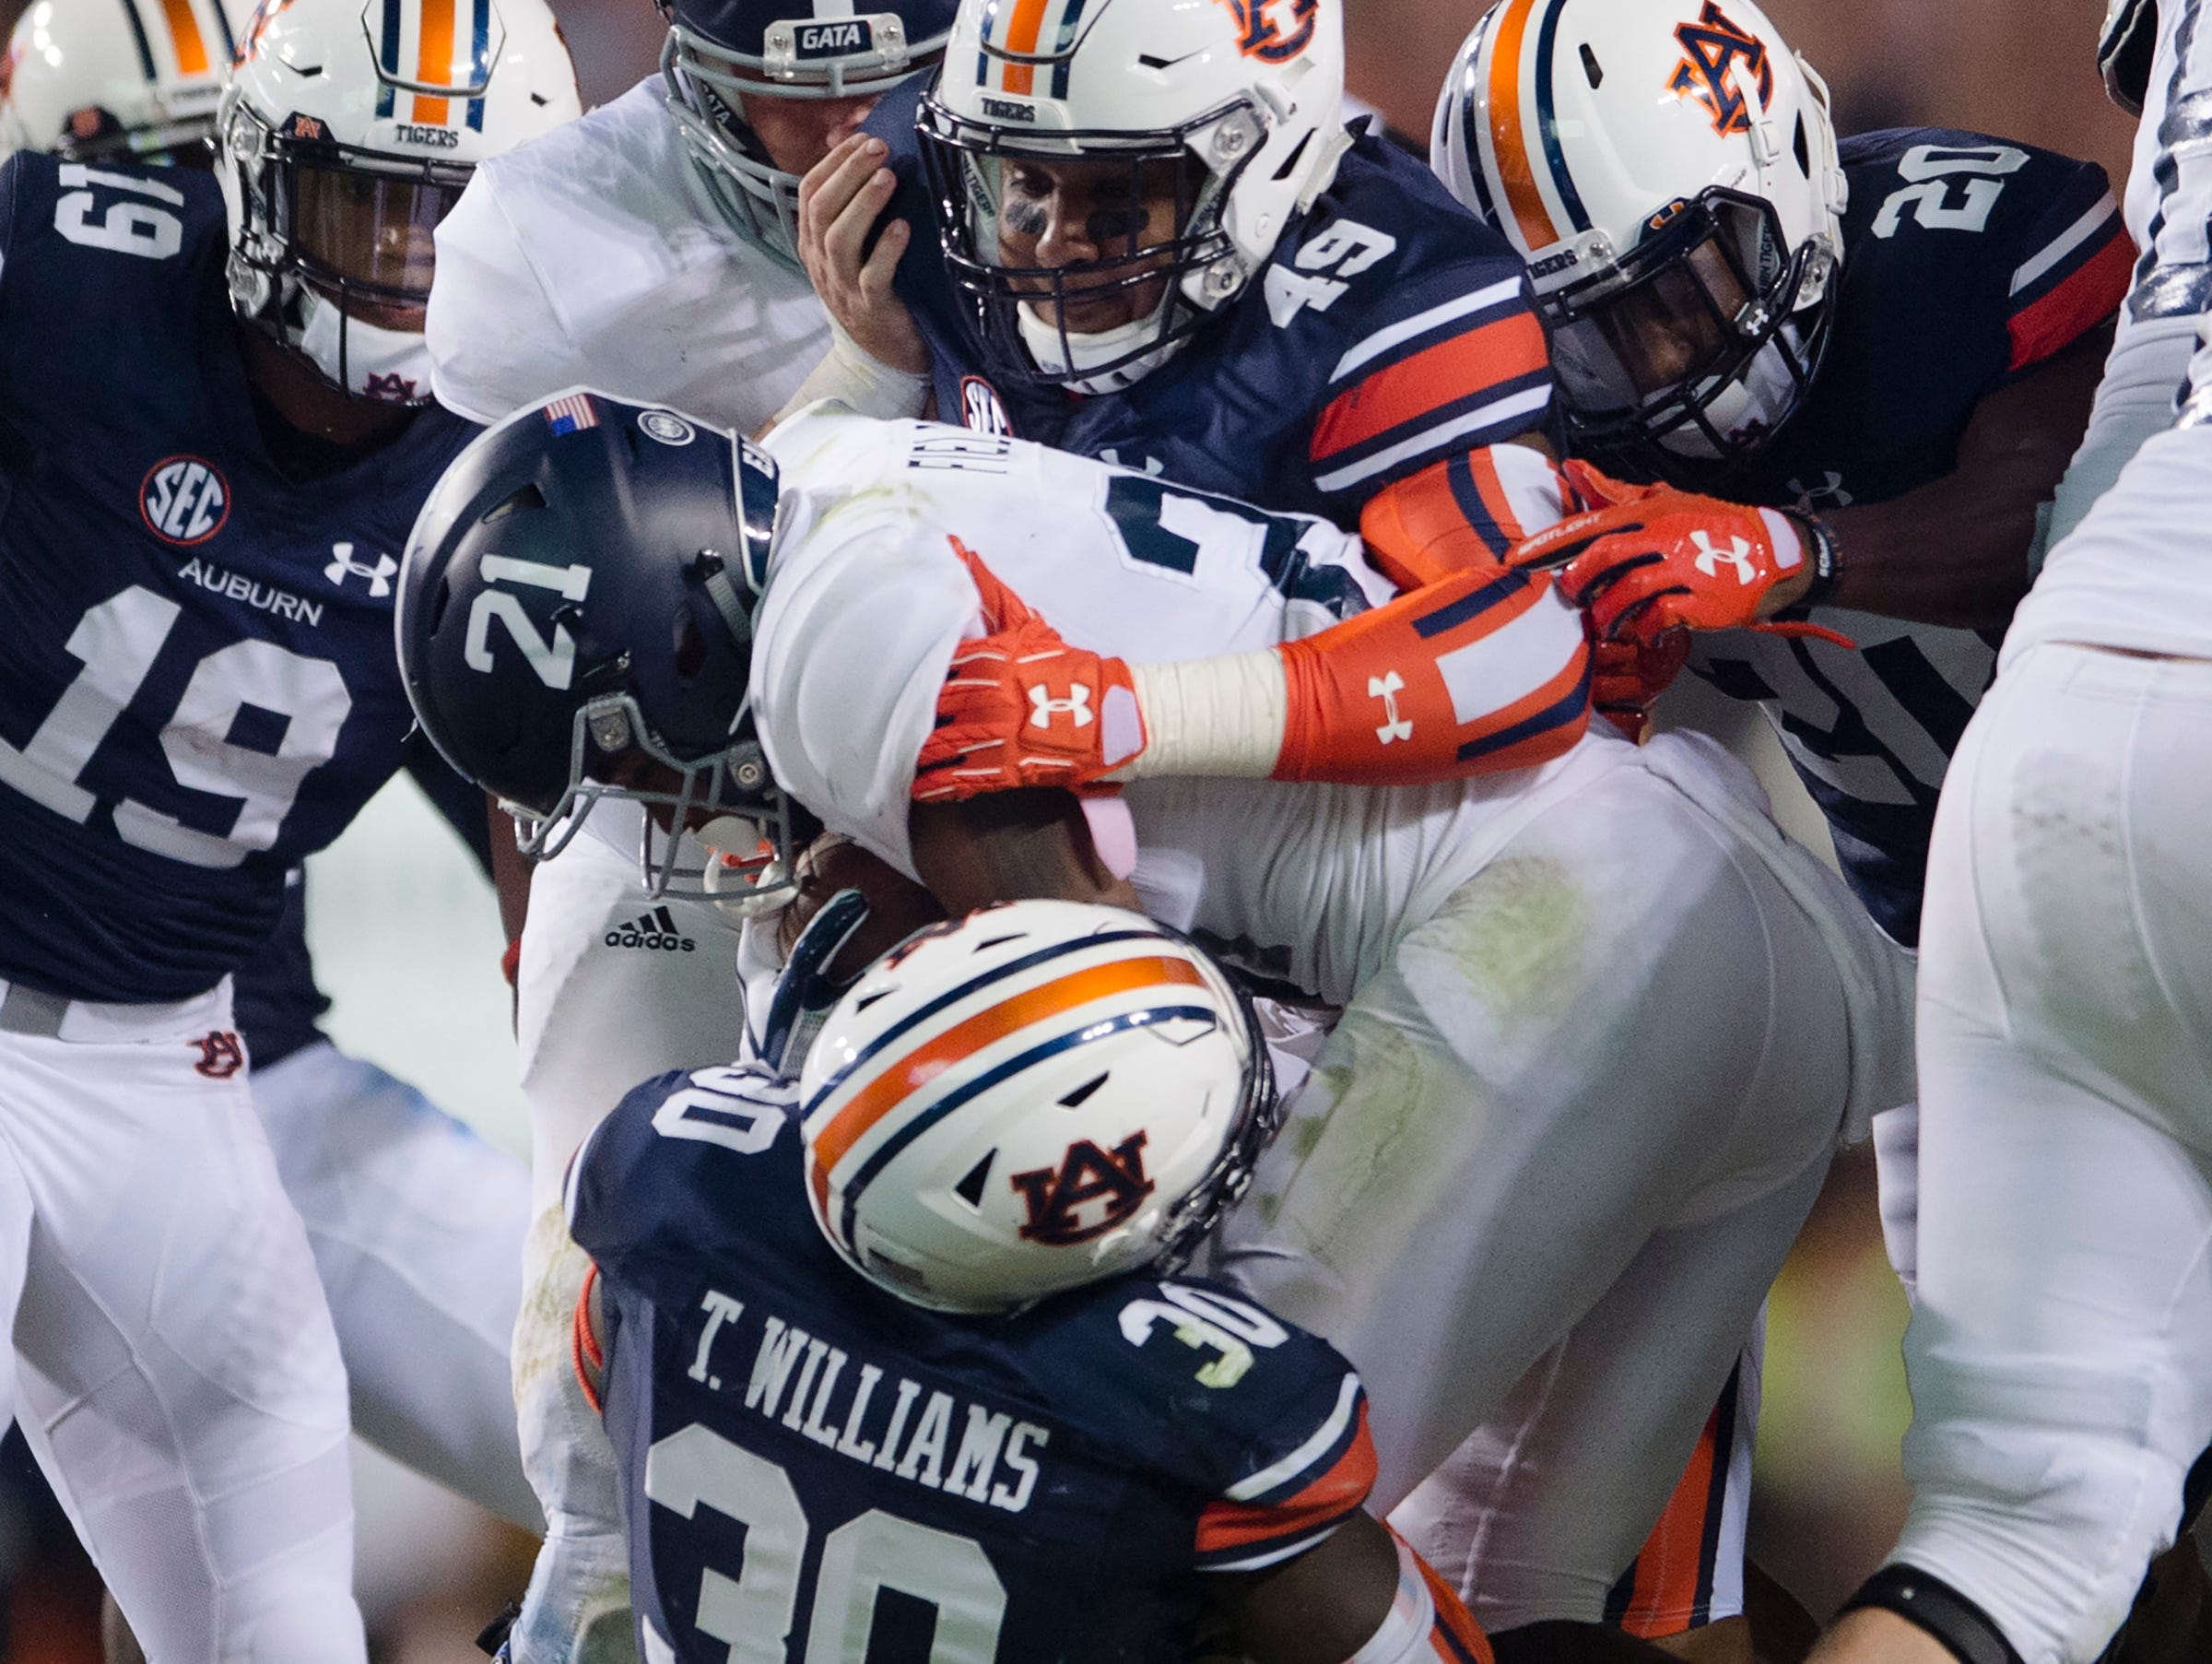 Auburn linebacker Tre' Williams (30) and Auburn linebacker Darrell Williams (49) tackles Georgia Southern running back Wesley Fields (21) during the NCAA football game between Auburn vs. Georgia Southern on Saturday, Sept. 2, 2017, at Jordan Hare Stadium in Auburn, Ala.